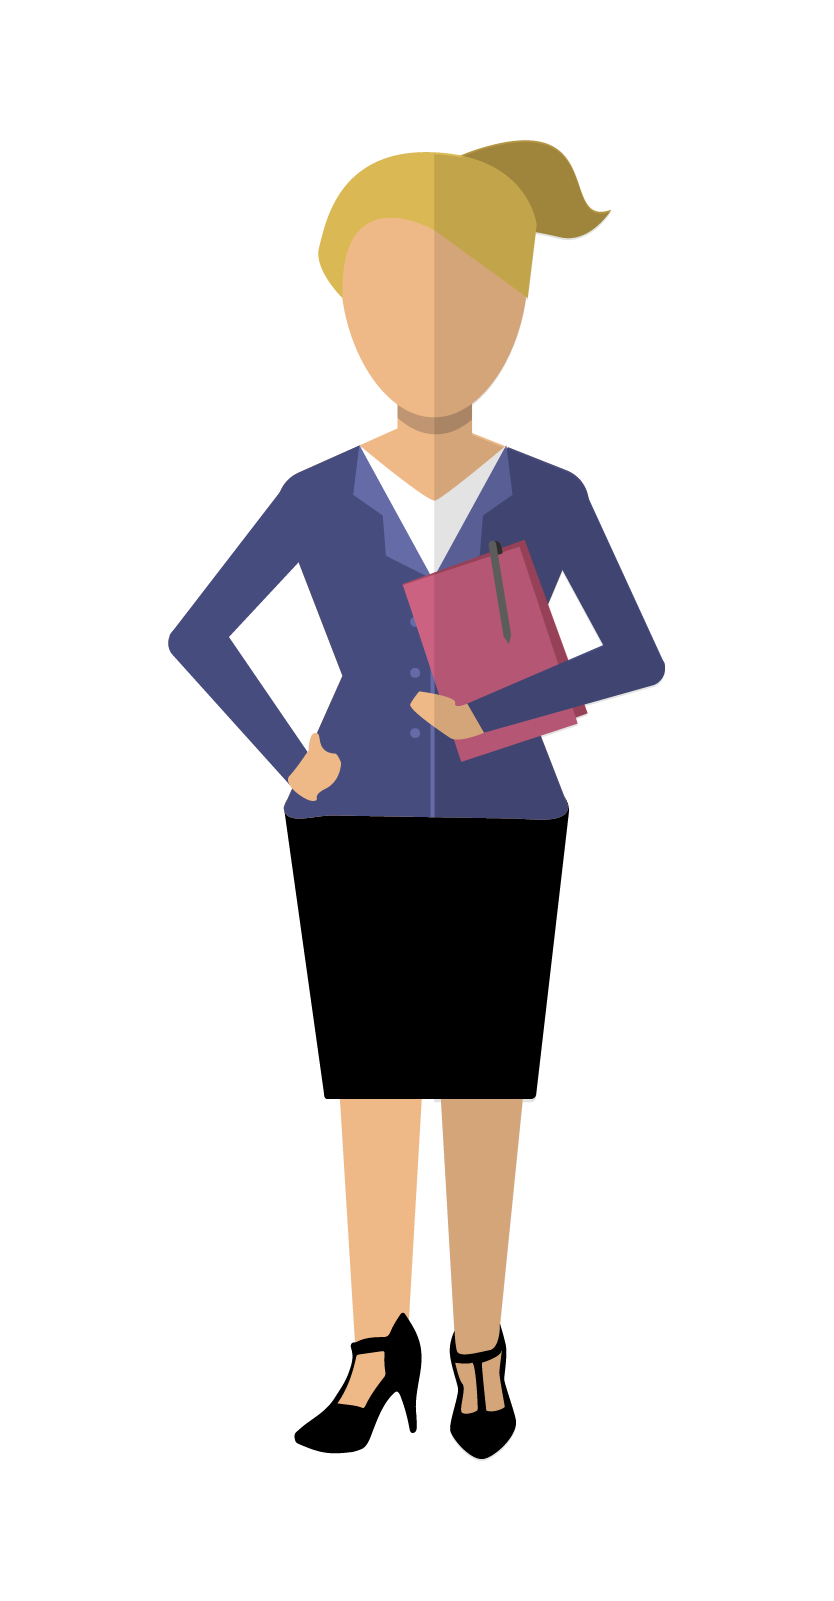 Health Educator illustration